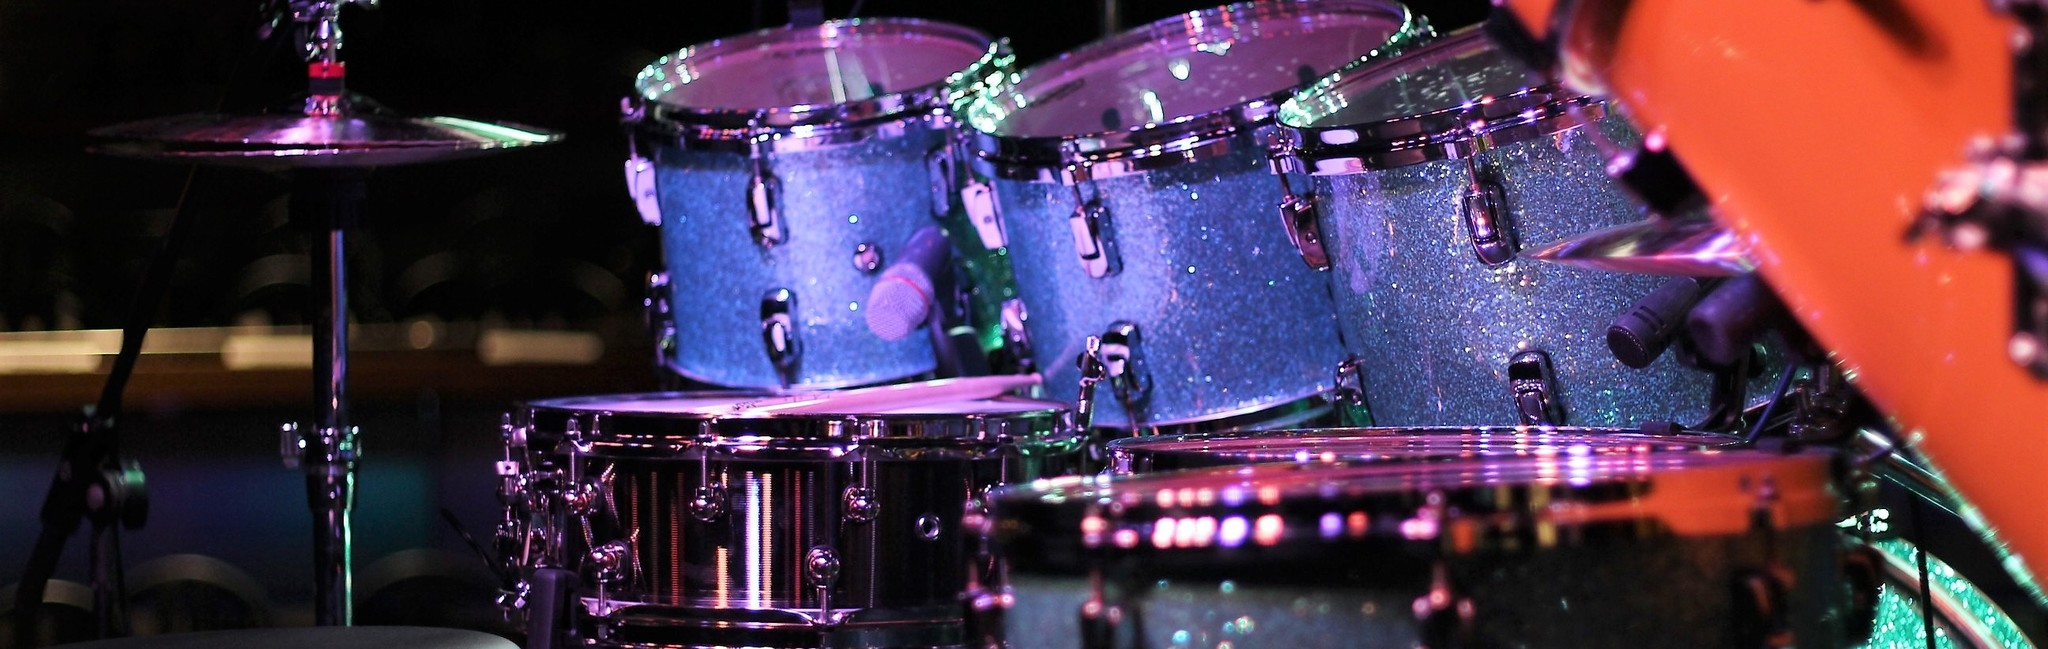 rupps drums drums and percussion gear denver s professional drum